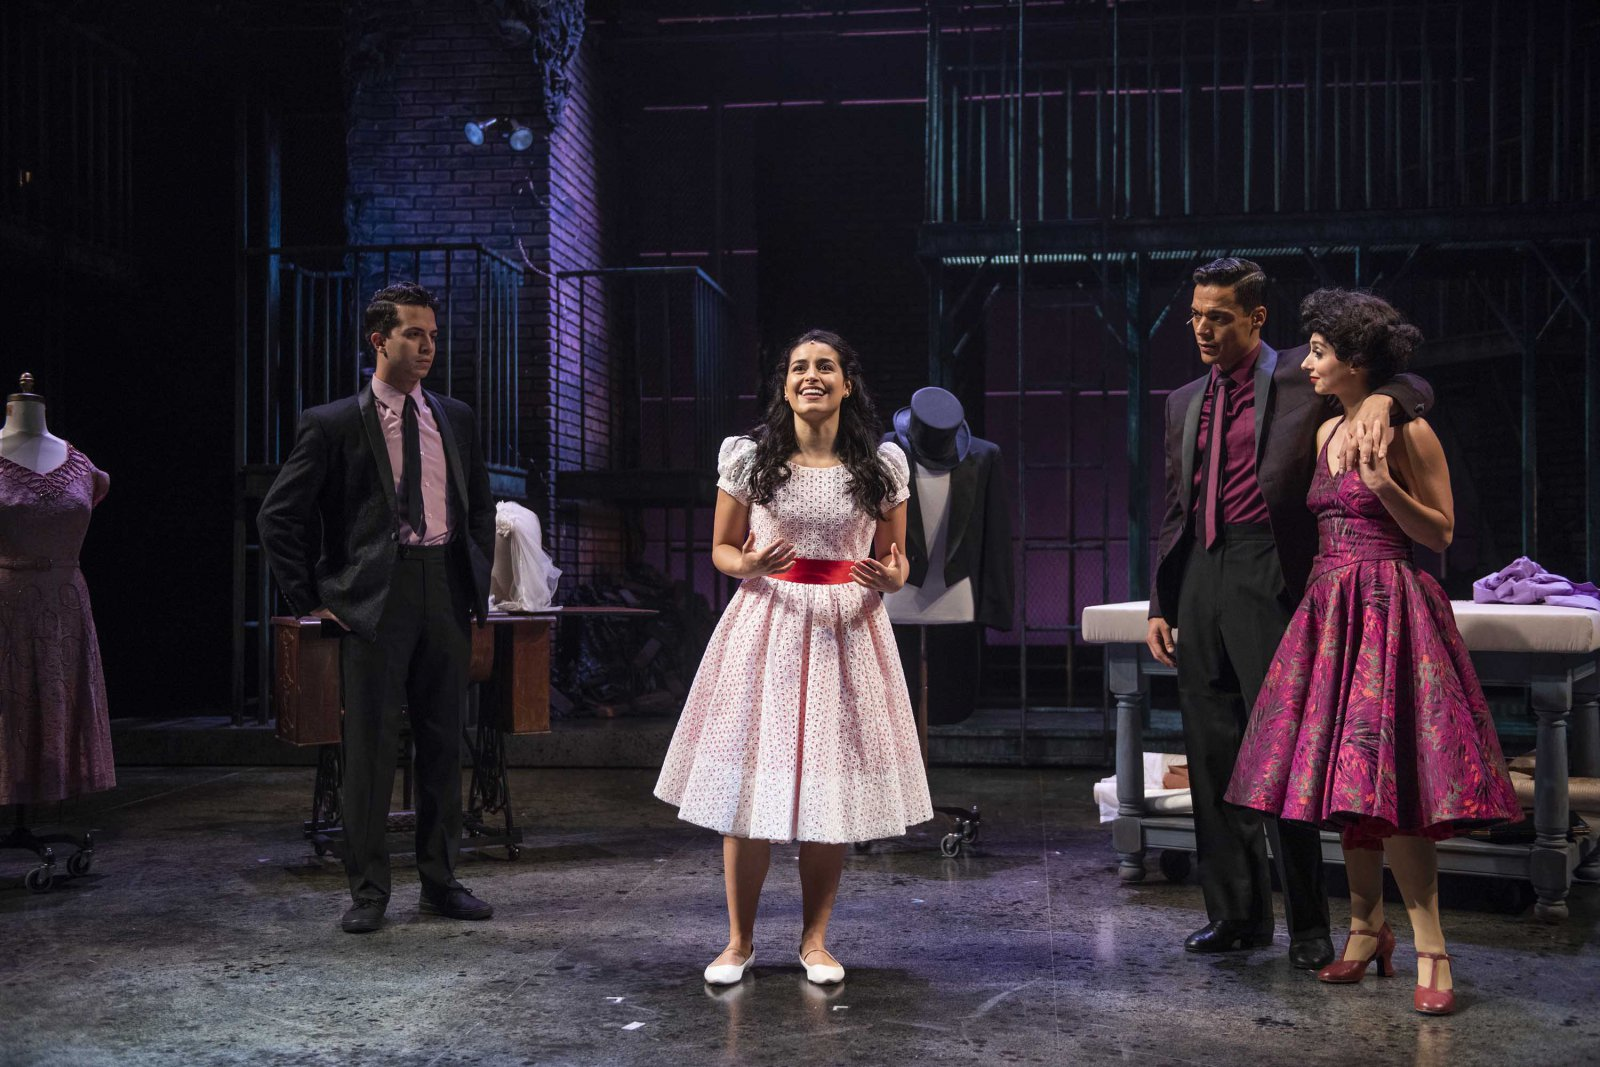 Milwaukee Repertory Theater presents West Side Story in the Quadracci Powerhouse September 17 – October 27, 2019. Left to right: Carlos Jimenez, Liesl Collazo, Jose-Luis Lopez, Jr. and Courtney Arango